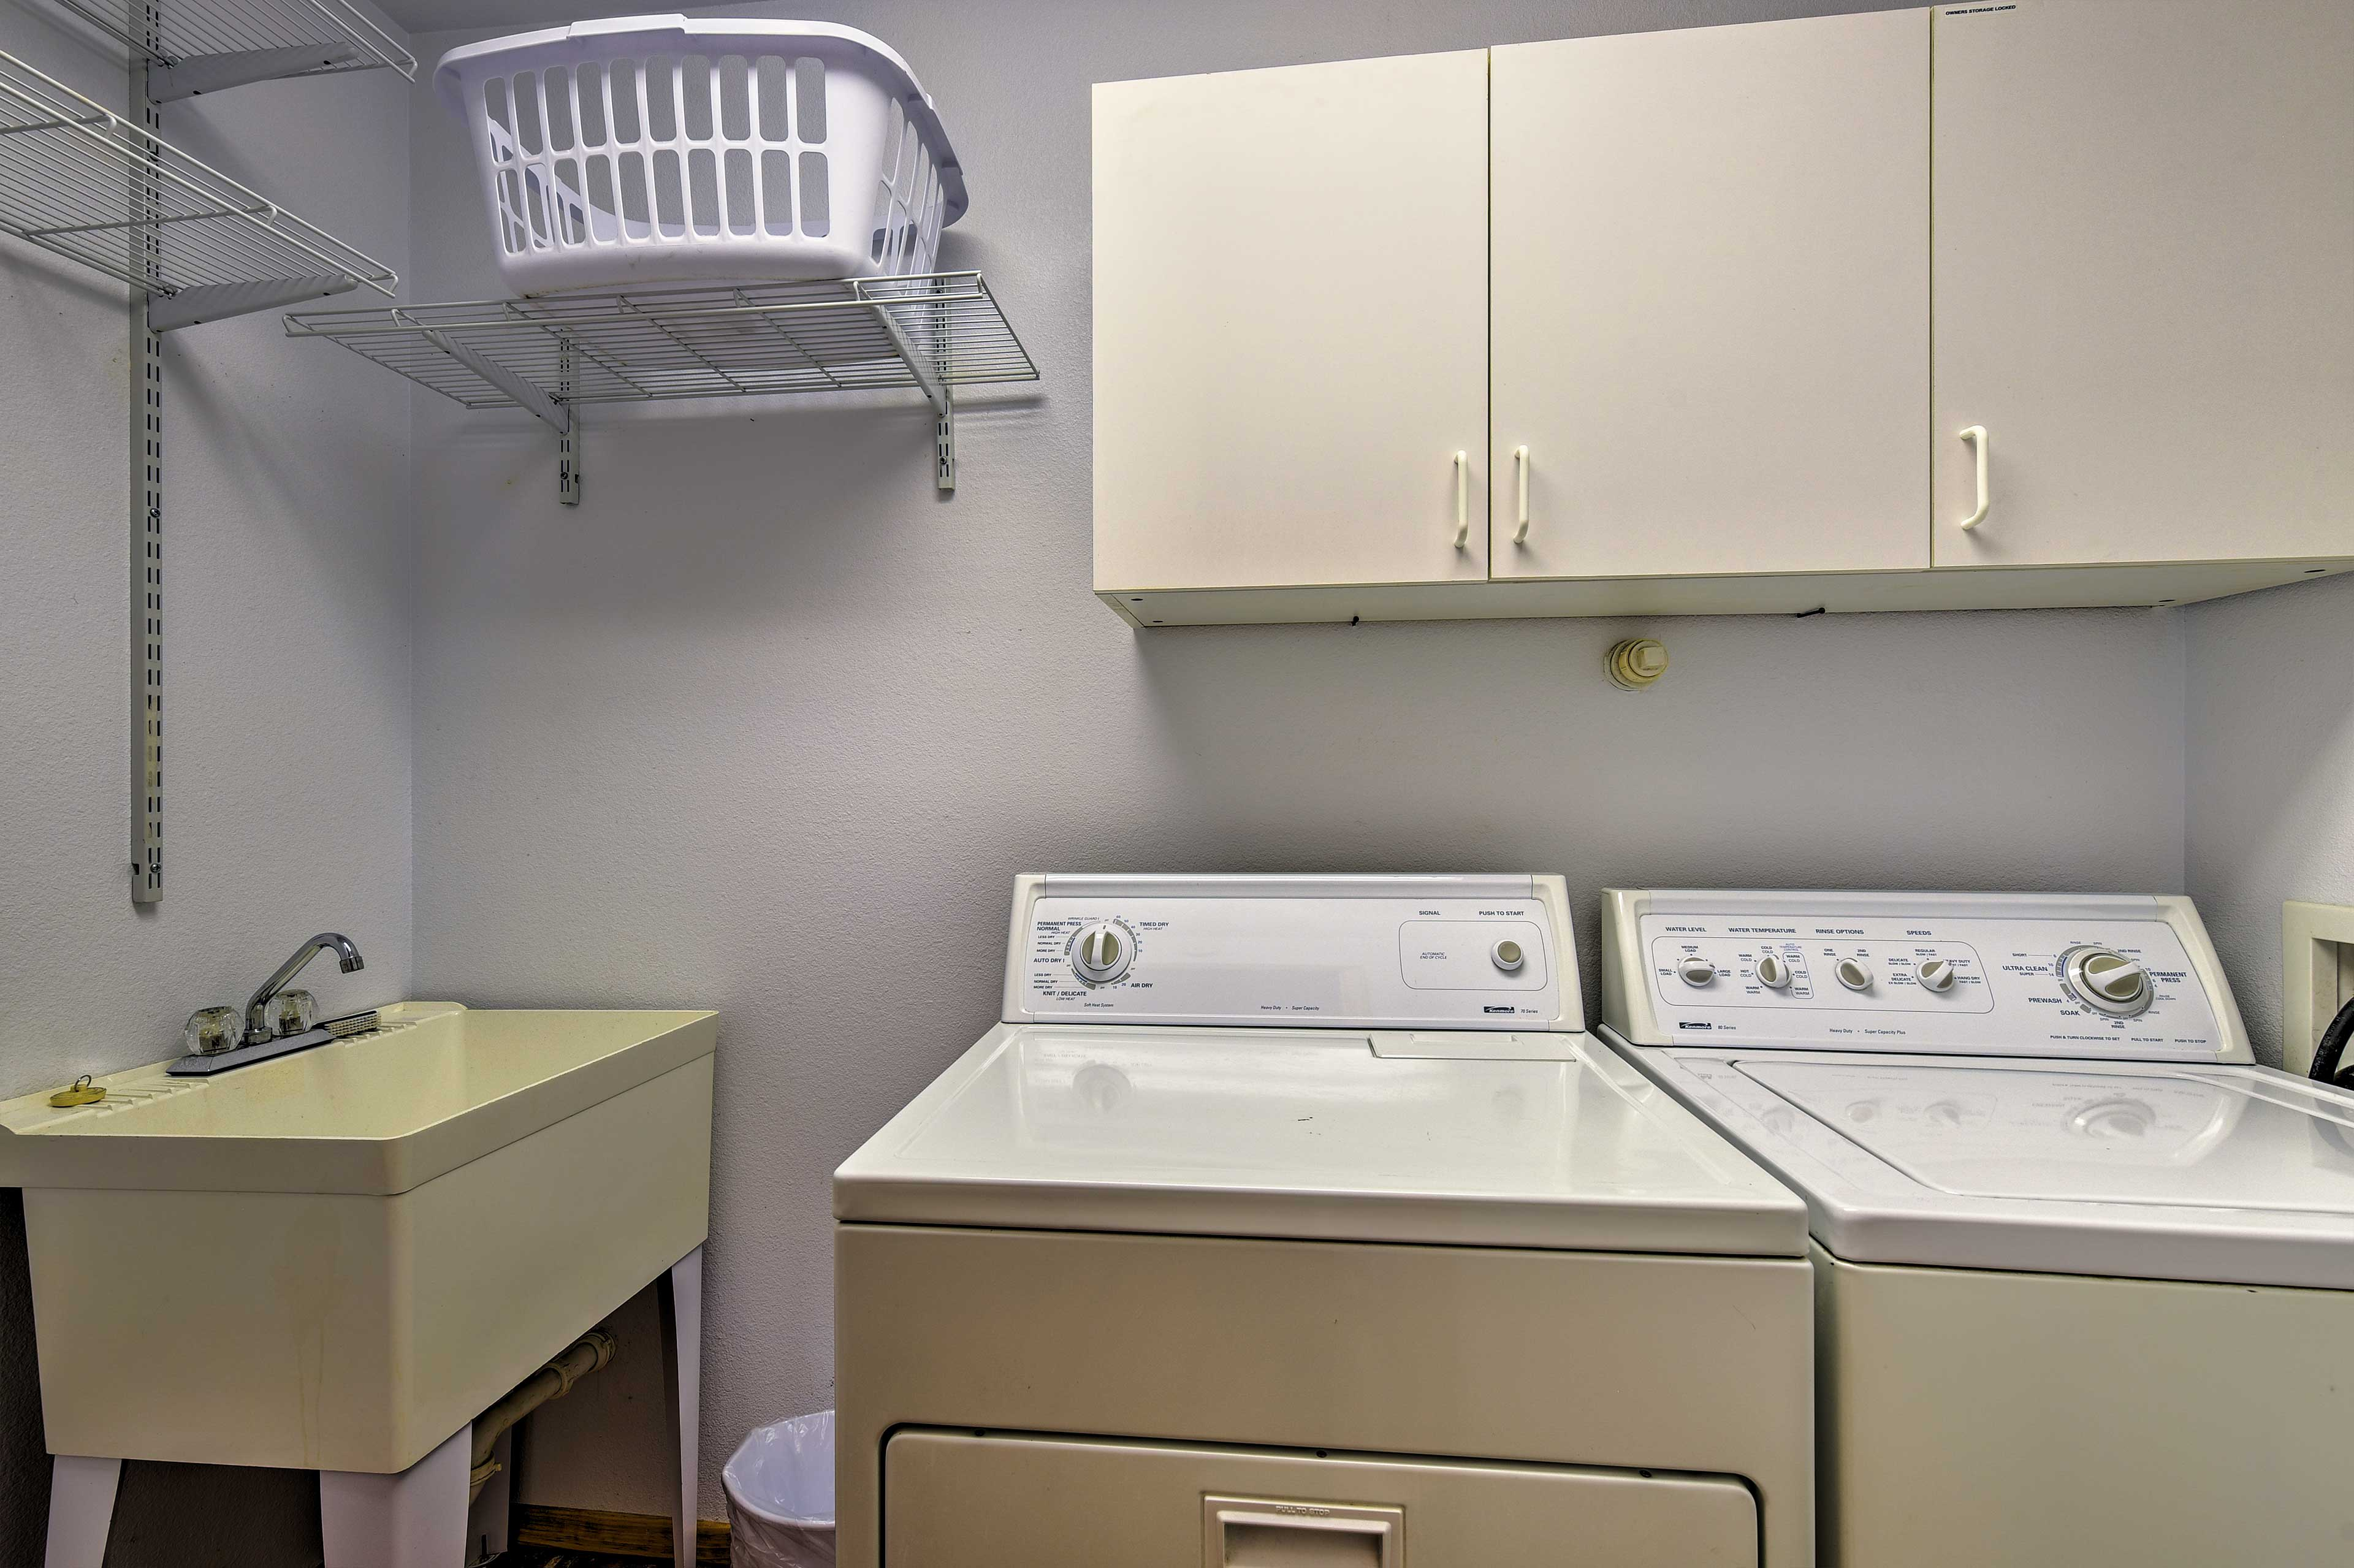 The bathroom also includes a the laundry room with a washer and dryer.